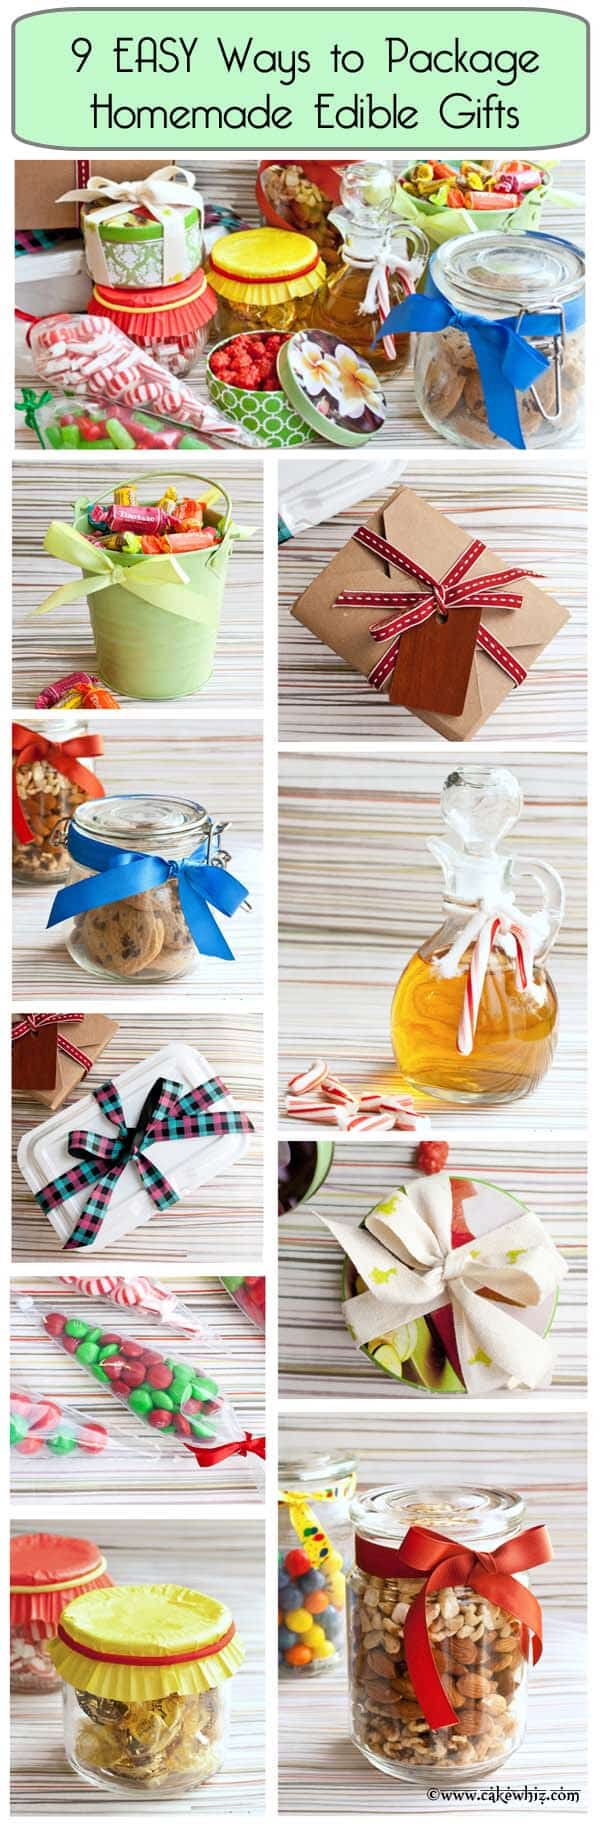 Collage Image Showing 9 Easy Ways to Package Edible Gifts (Cookies, Fudge, Candies)